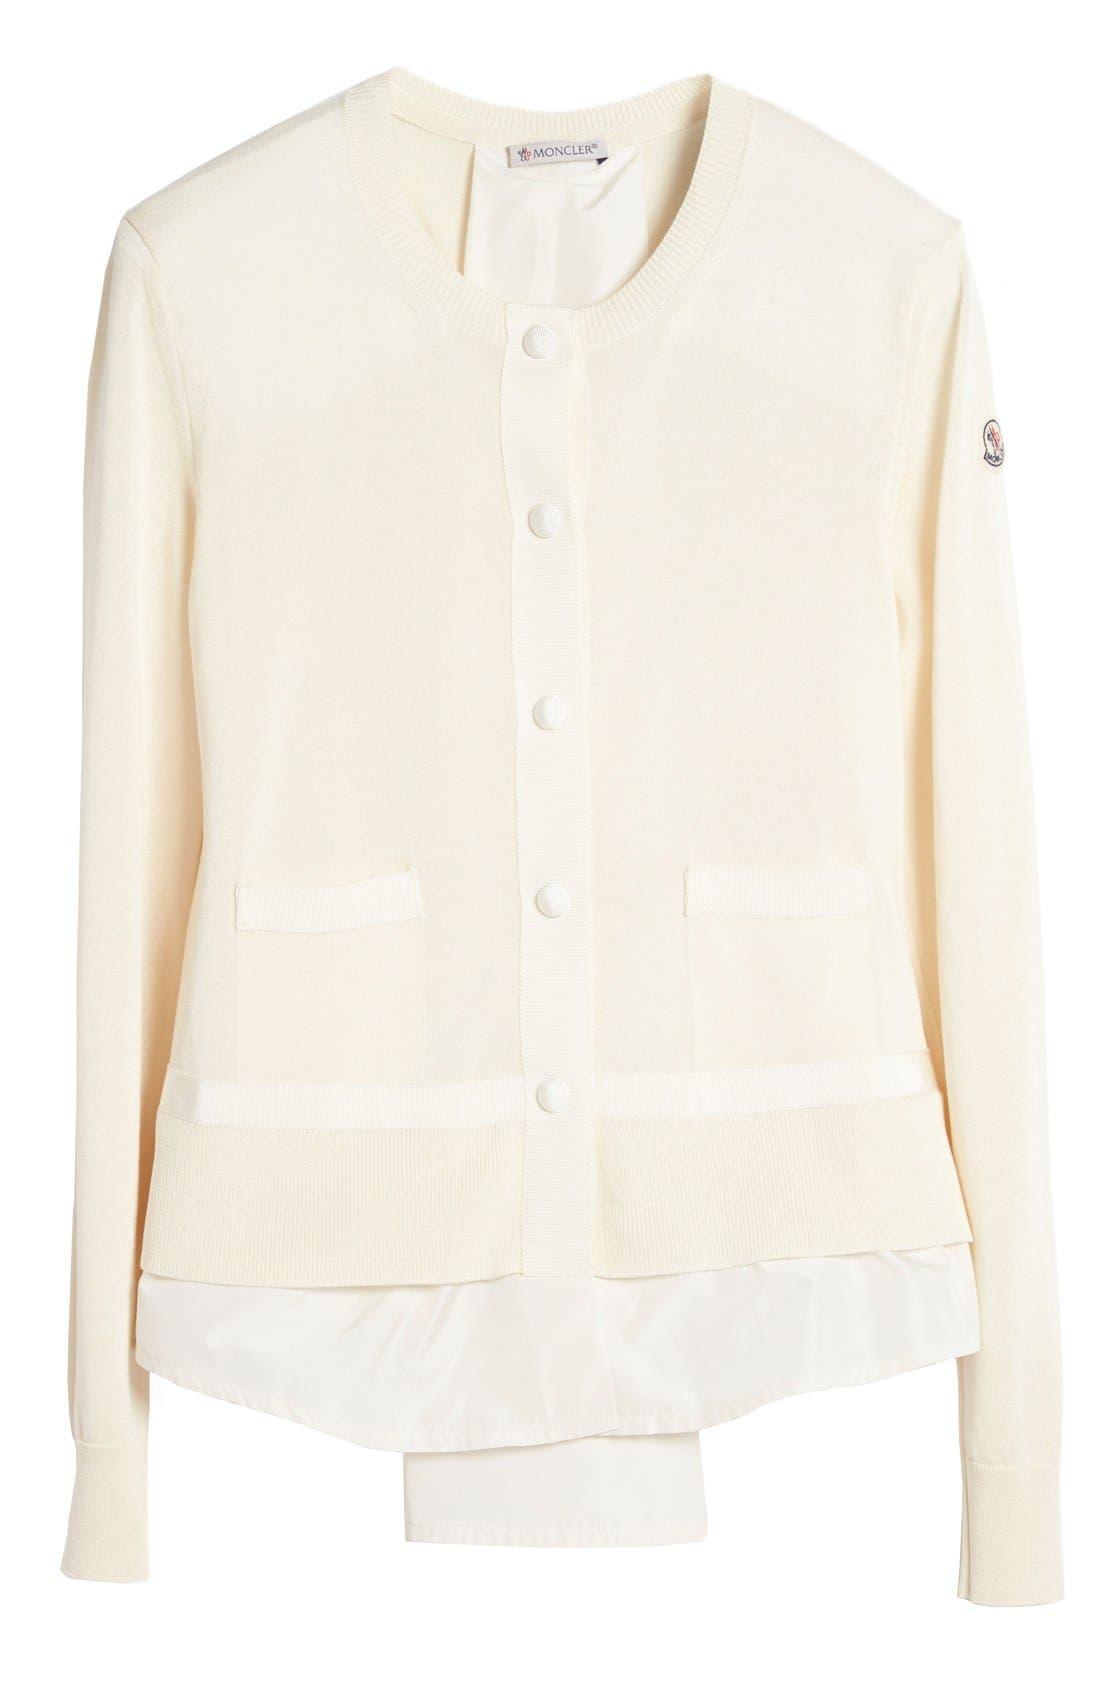 'Maglia' Tricot Button Cardigan,                             Alternate thumbnail 4, color,                             White